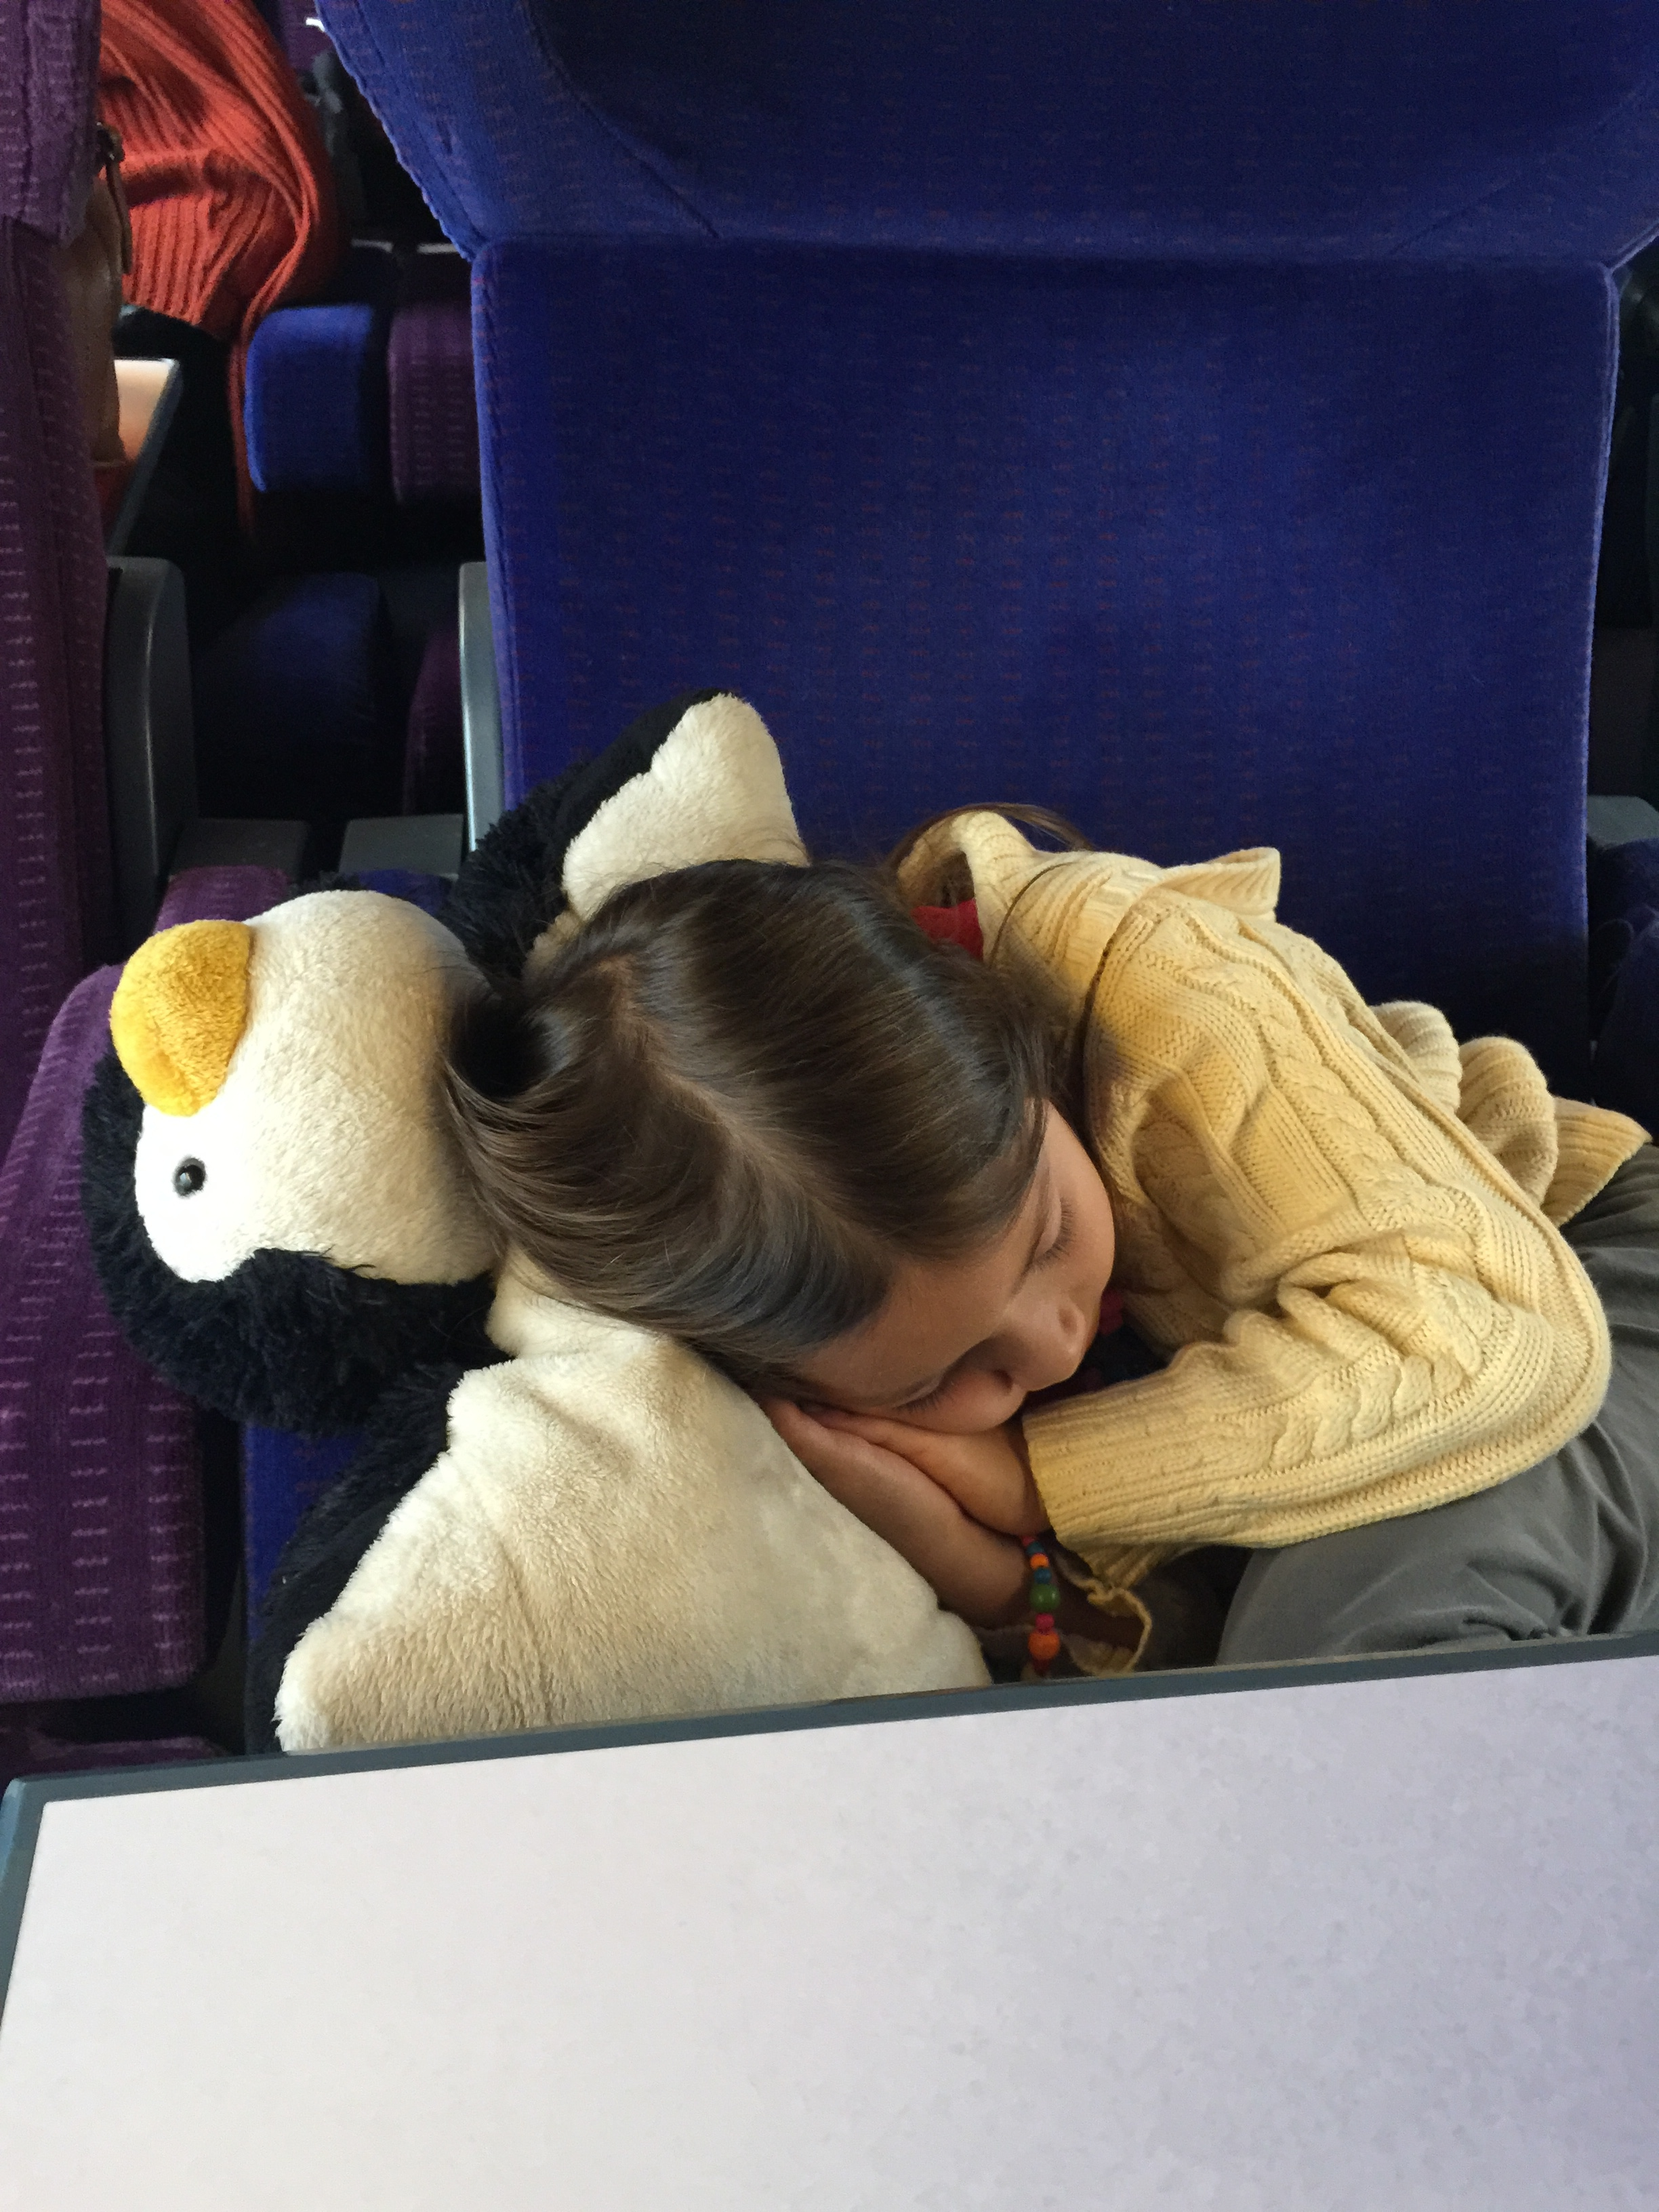 My daughter sleeping on a French train